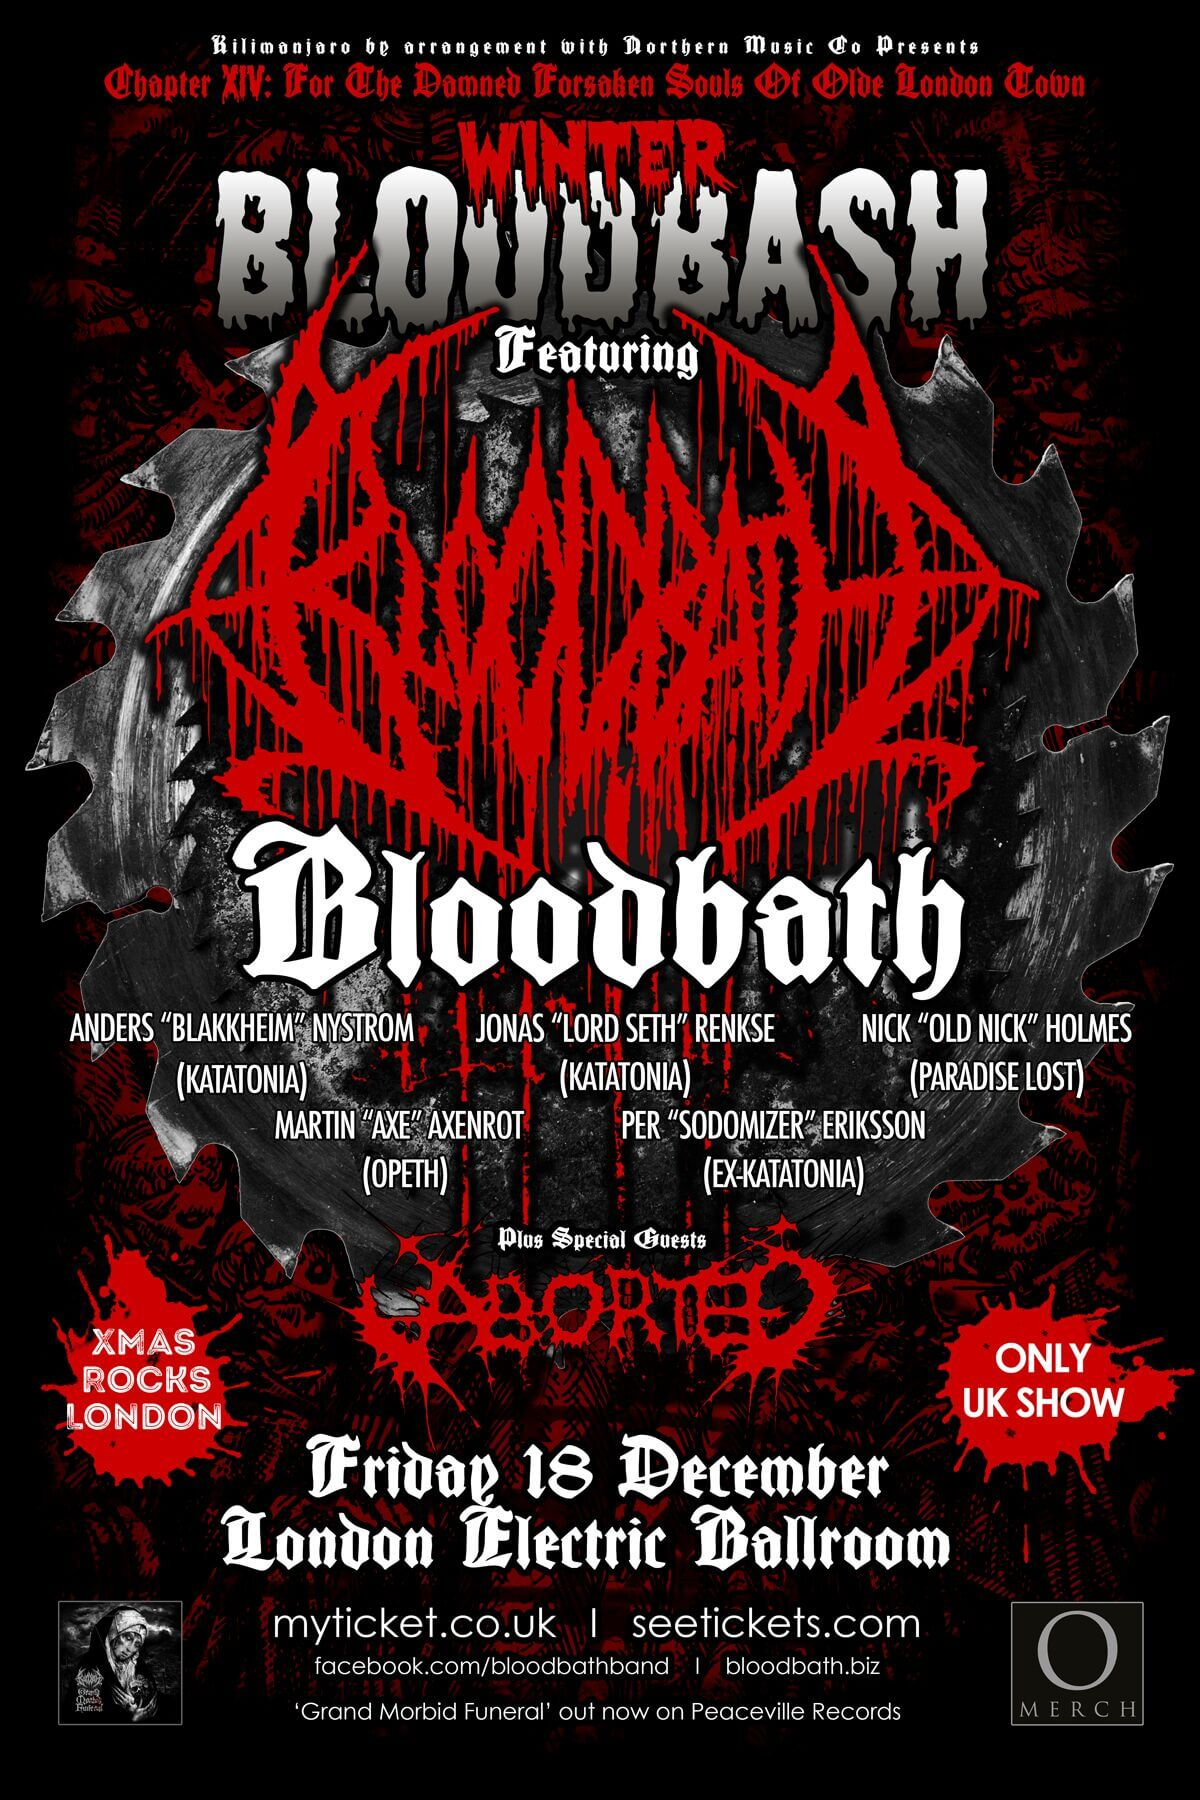 With Bloodbath's one off 'Winter Bloodbash' London show on 18th December at the Electric Ballroom just around the corner and in the spirit of Christmas the ...